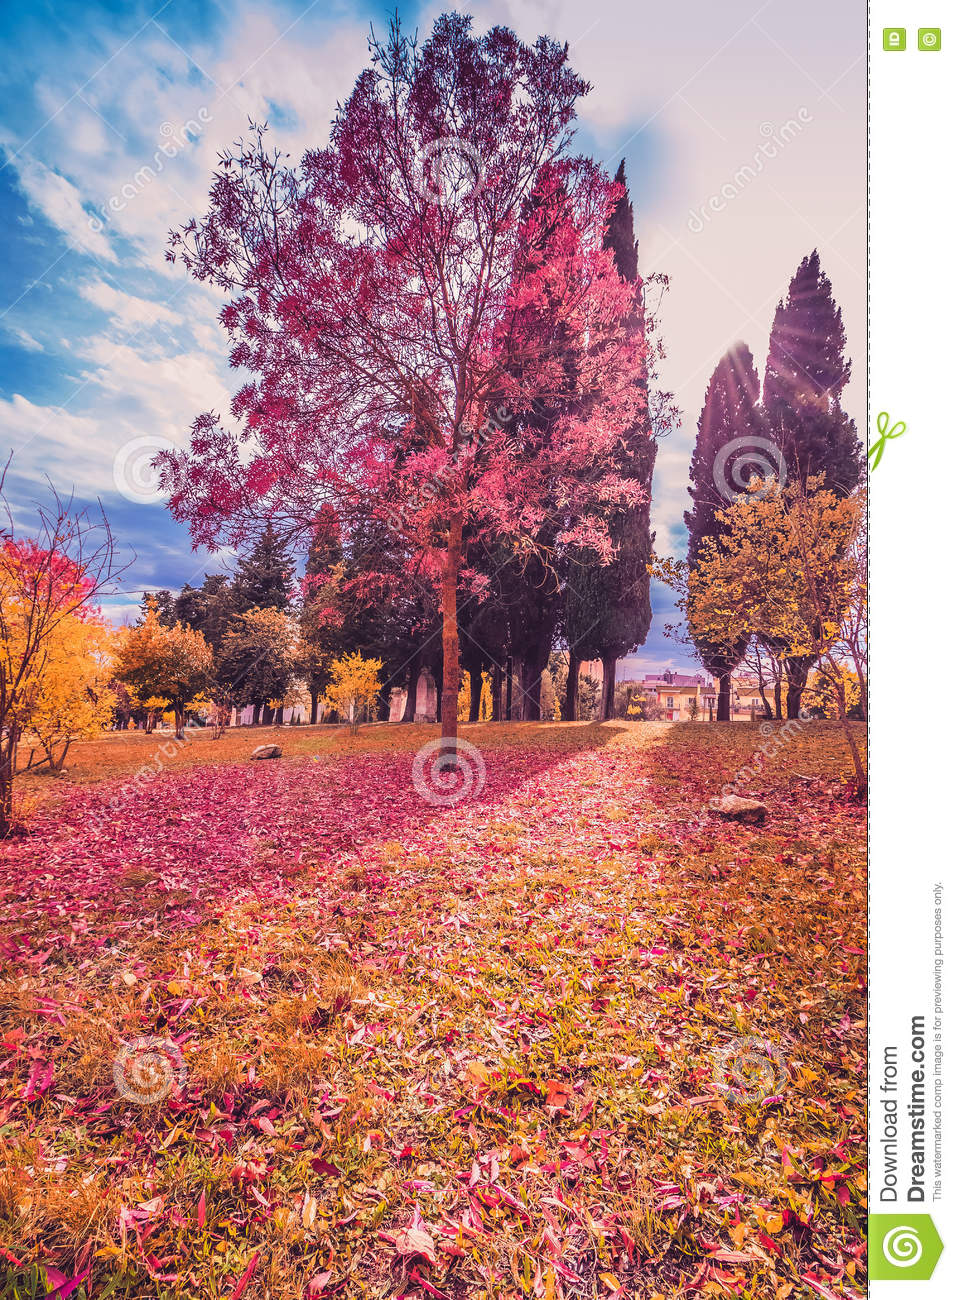 Yellow And Purple Colorful Leaves Autumn Colors In The Park Outdoor With Tree And Sun Ray Stock Image Image Of Purple Outdoor 80120751